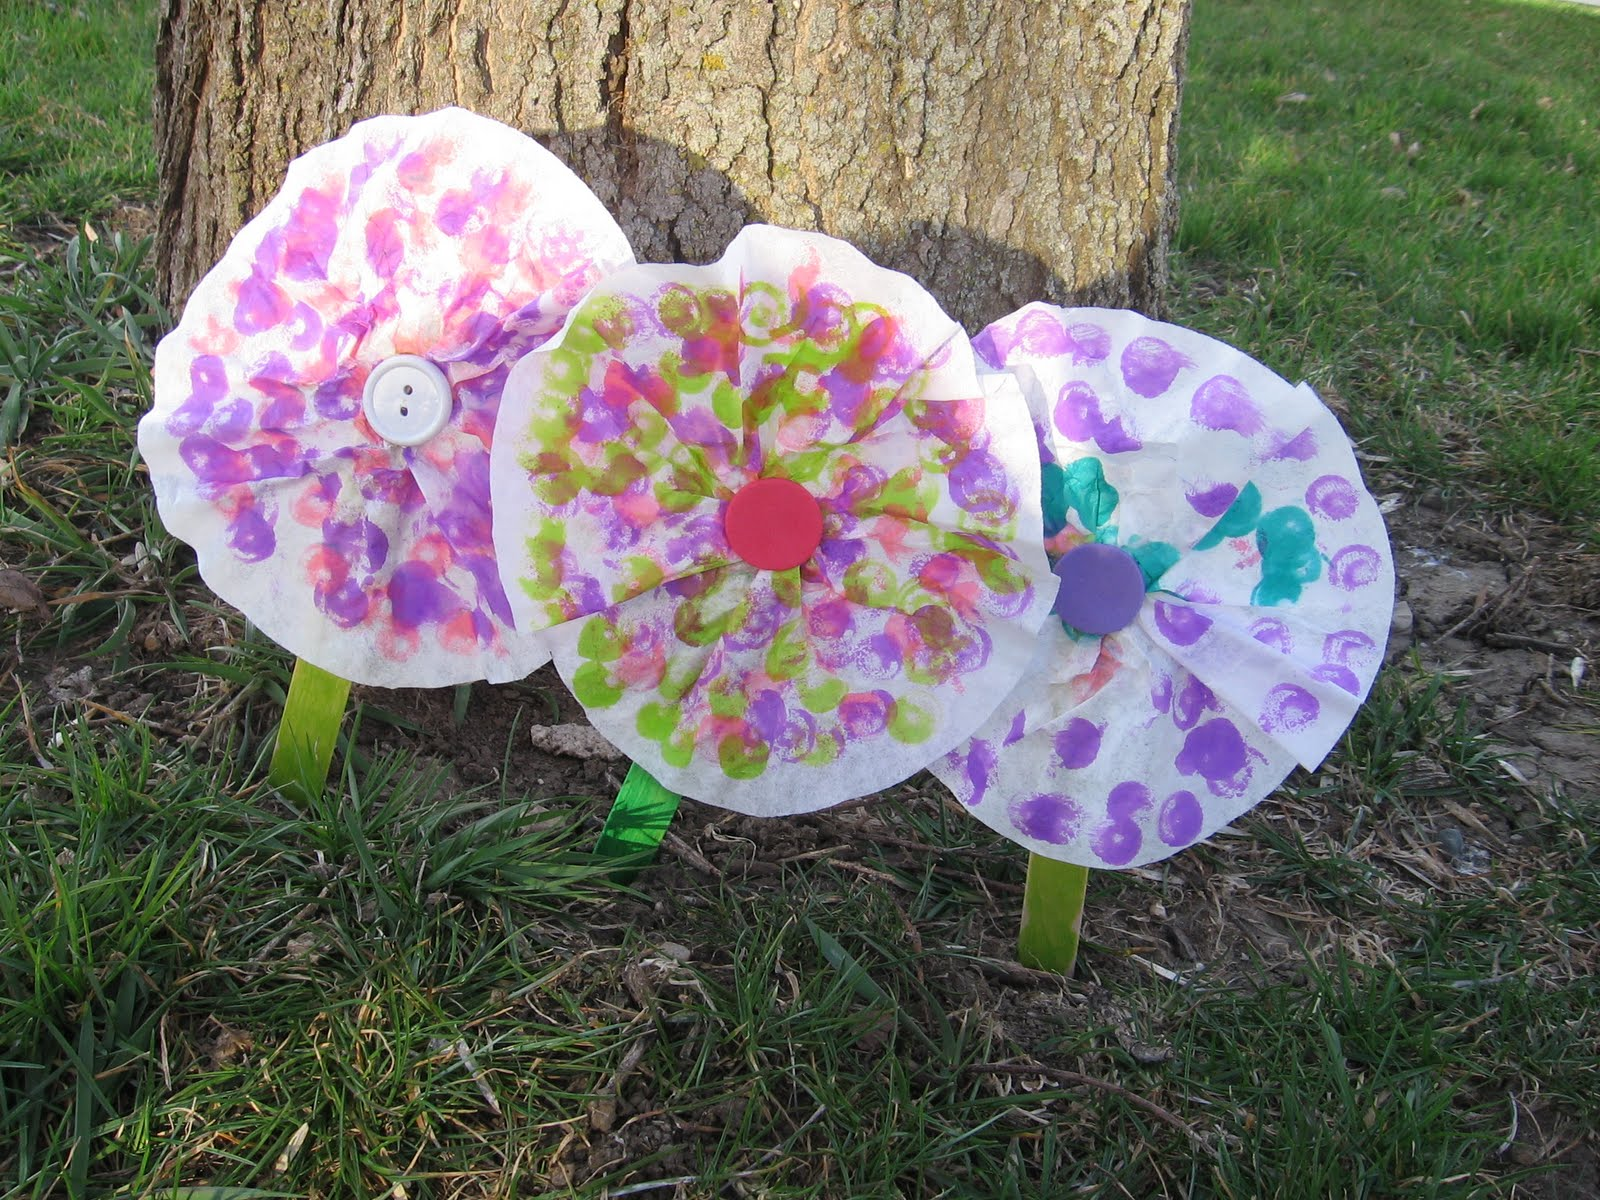 twelve crafts till christmas sunday kids craft april showers bring